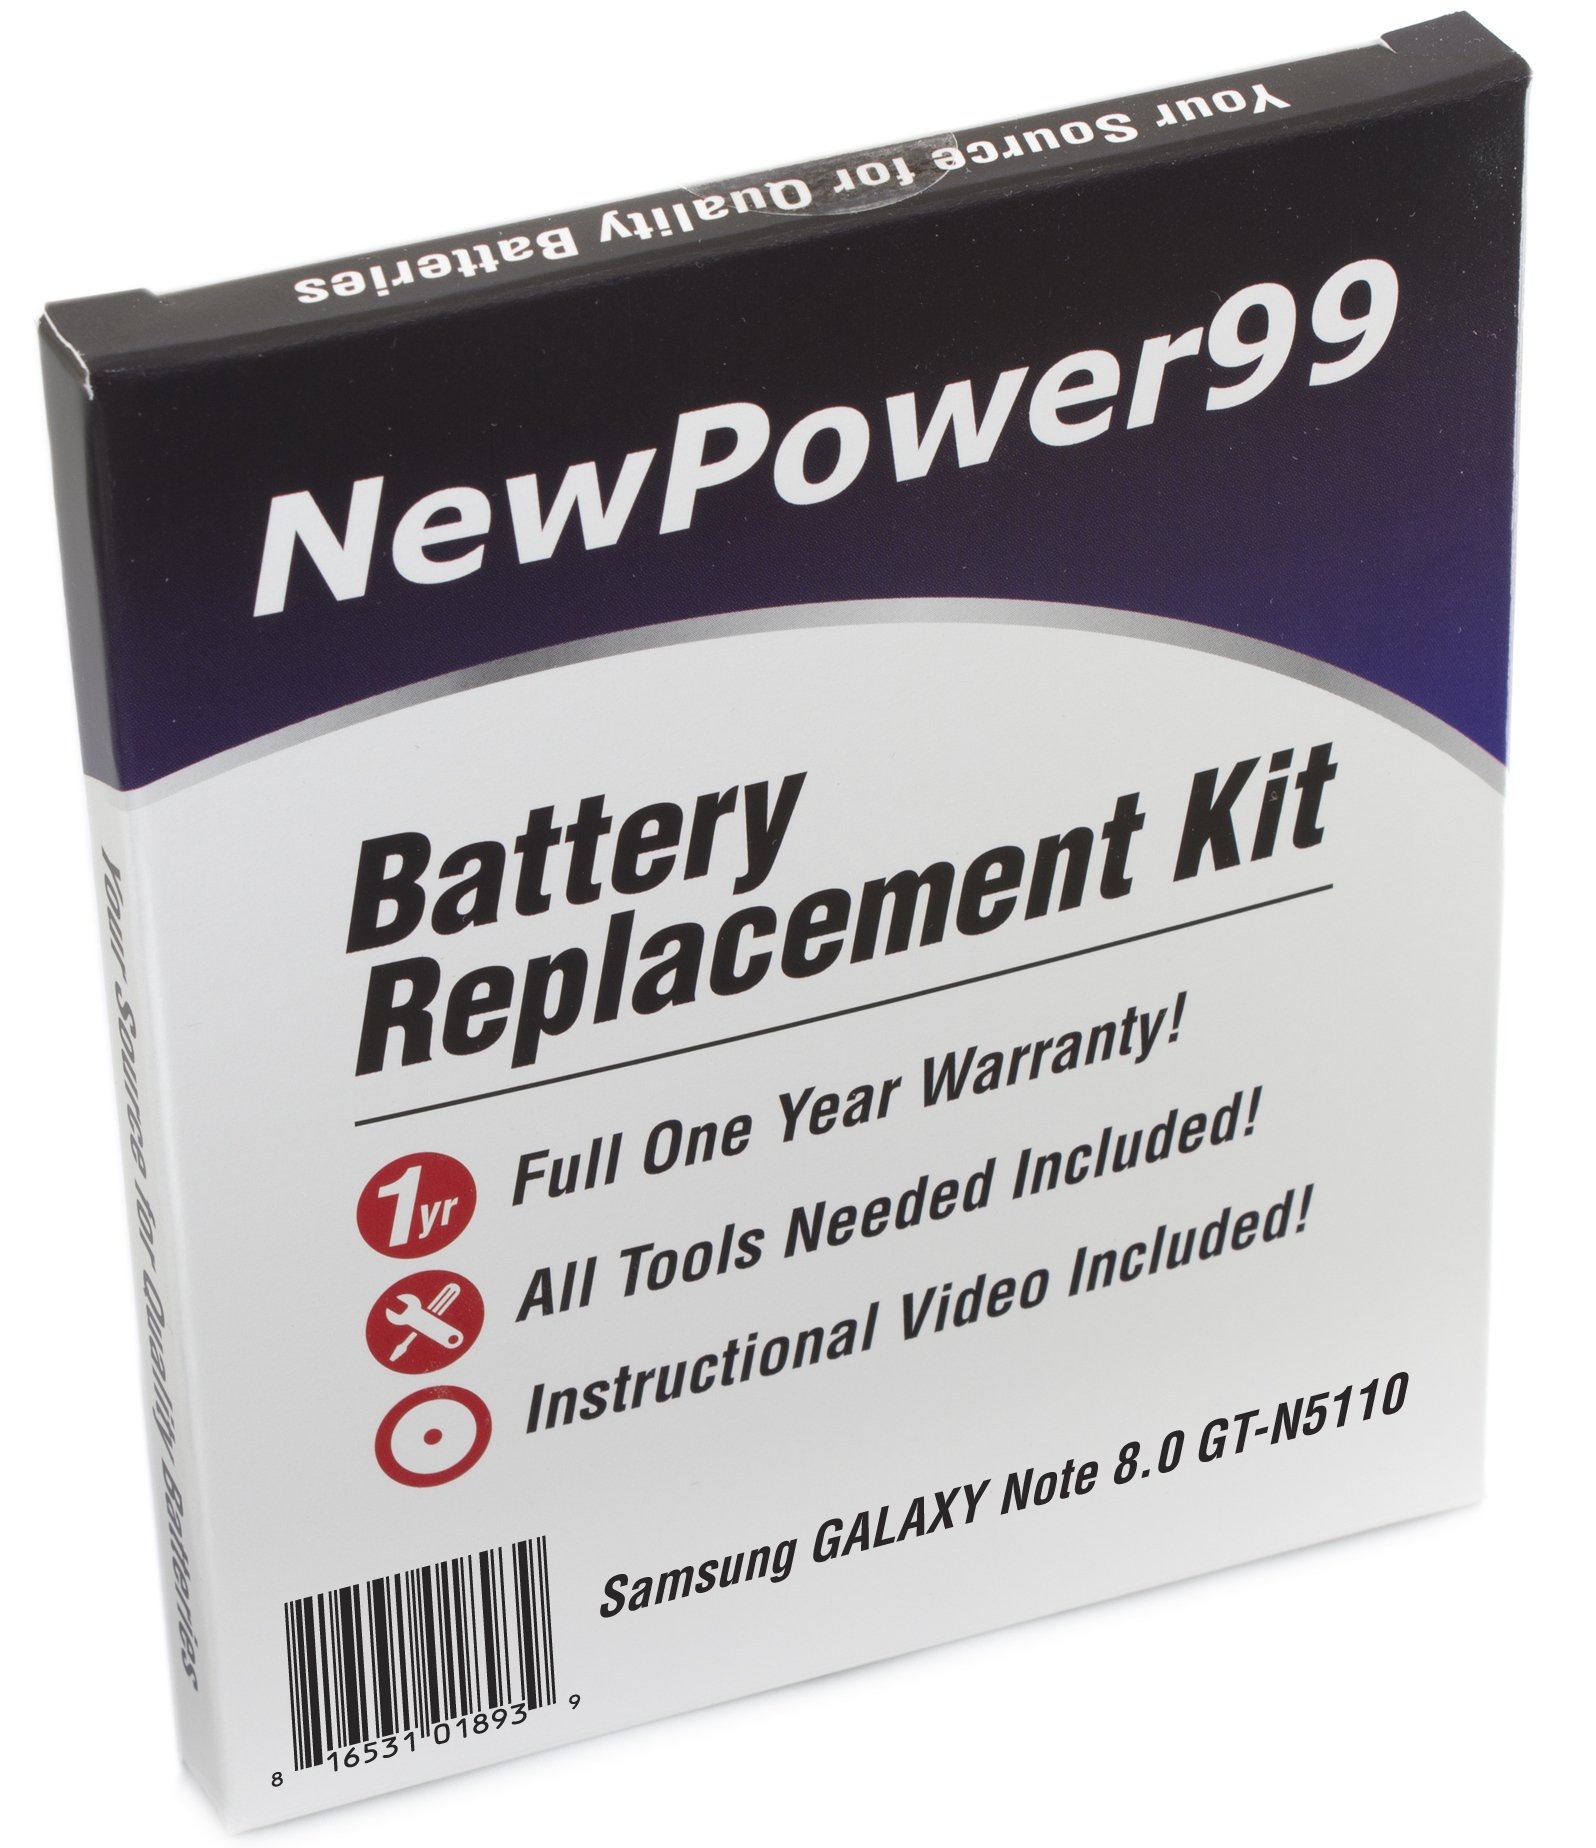 NewPower99 Battery Replacement Kit with Battery, Instructions and Tools Compatible with Galaxy Note 8.0 GT-N5110 Tablets by NewPower99